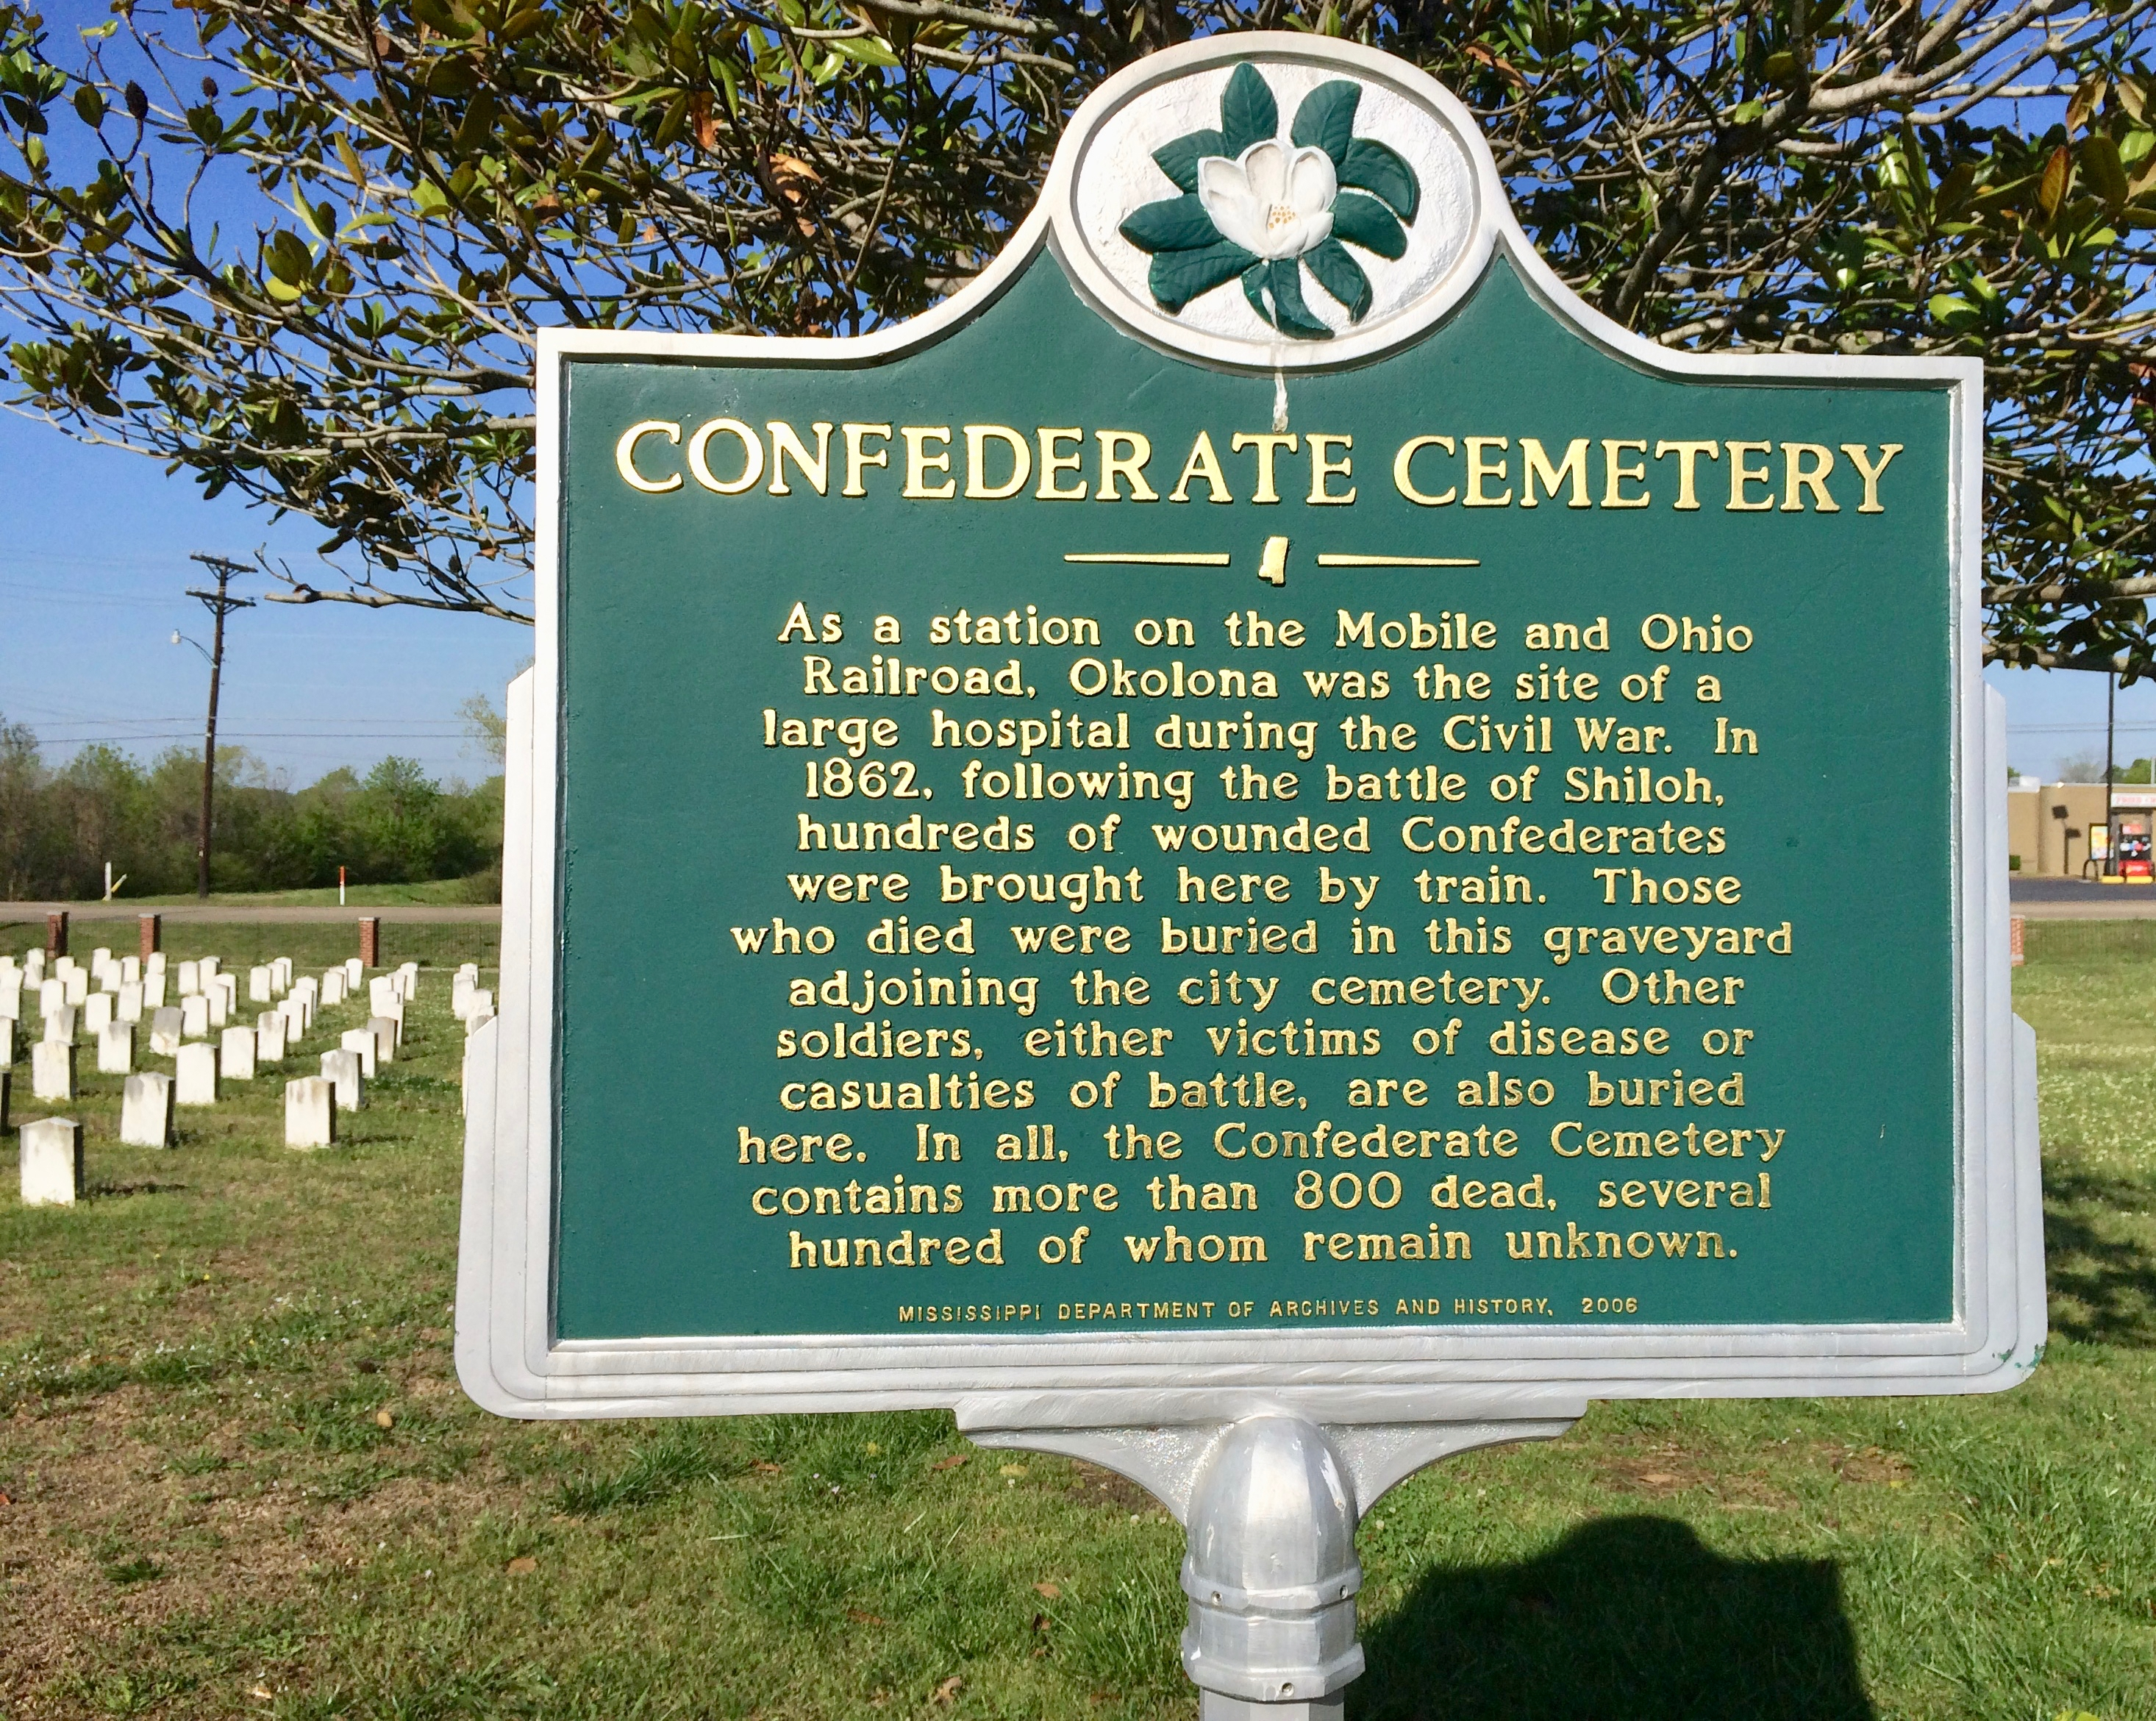 Official Landmark of the Confederate Cemetery.